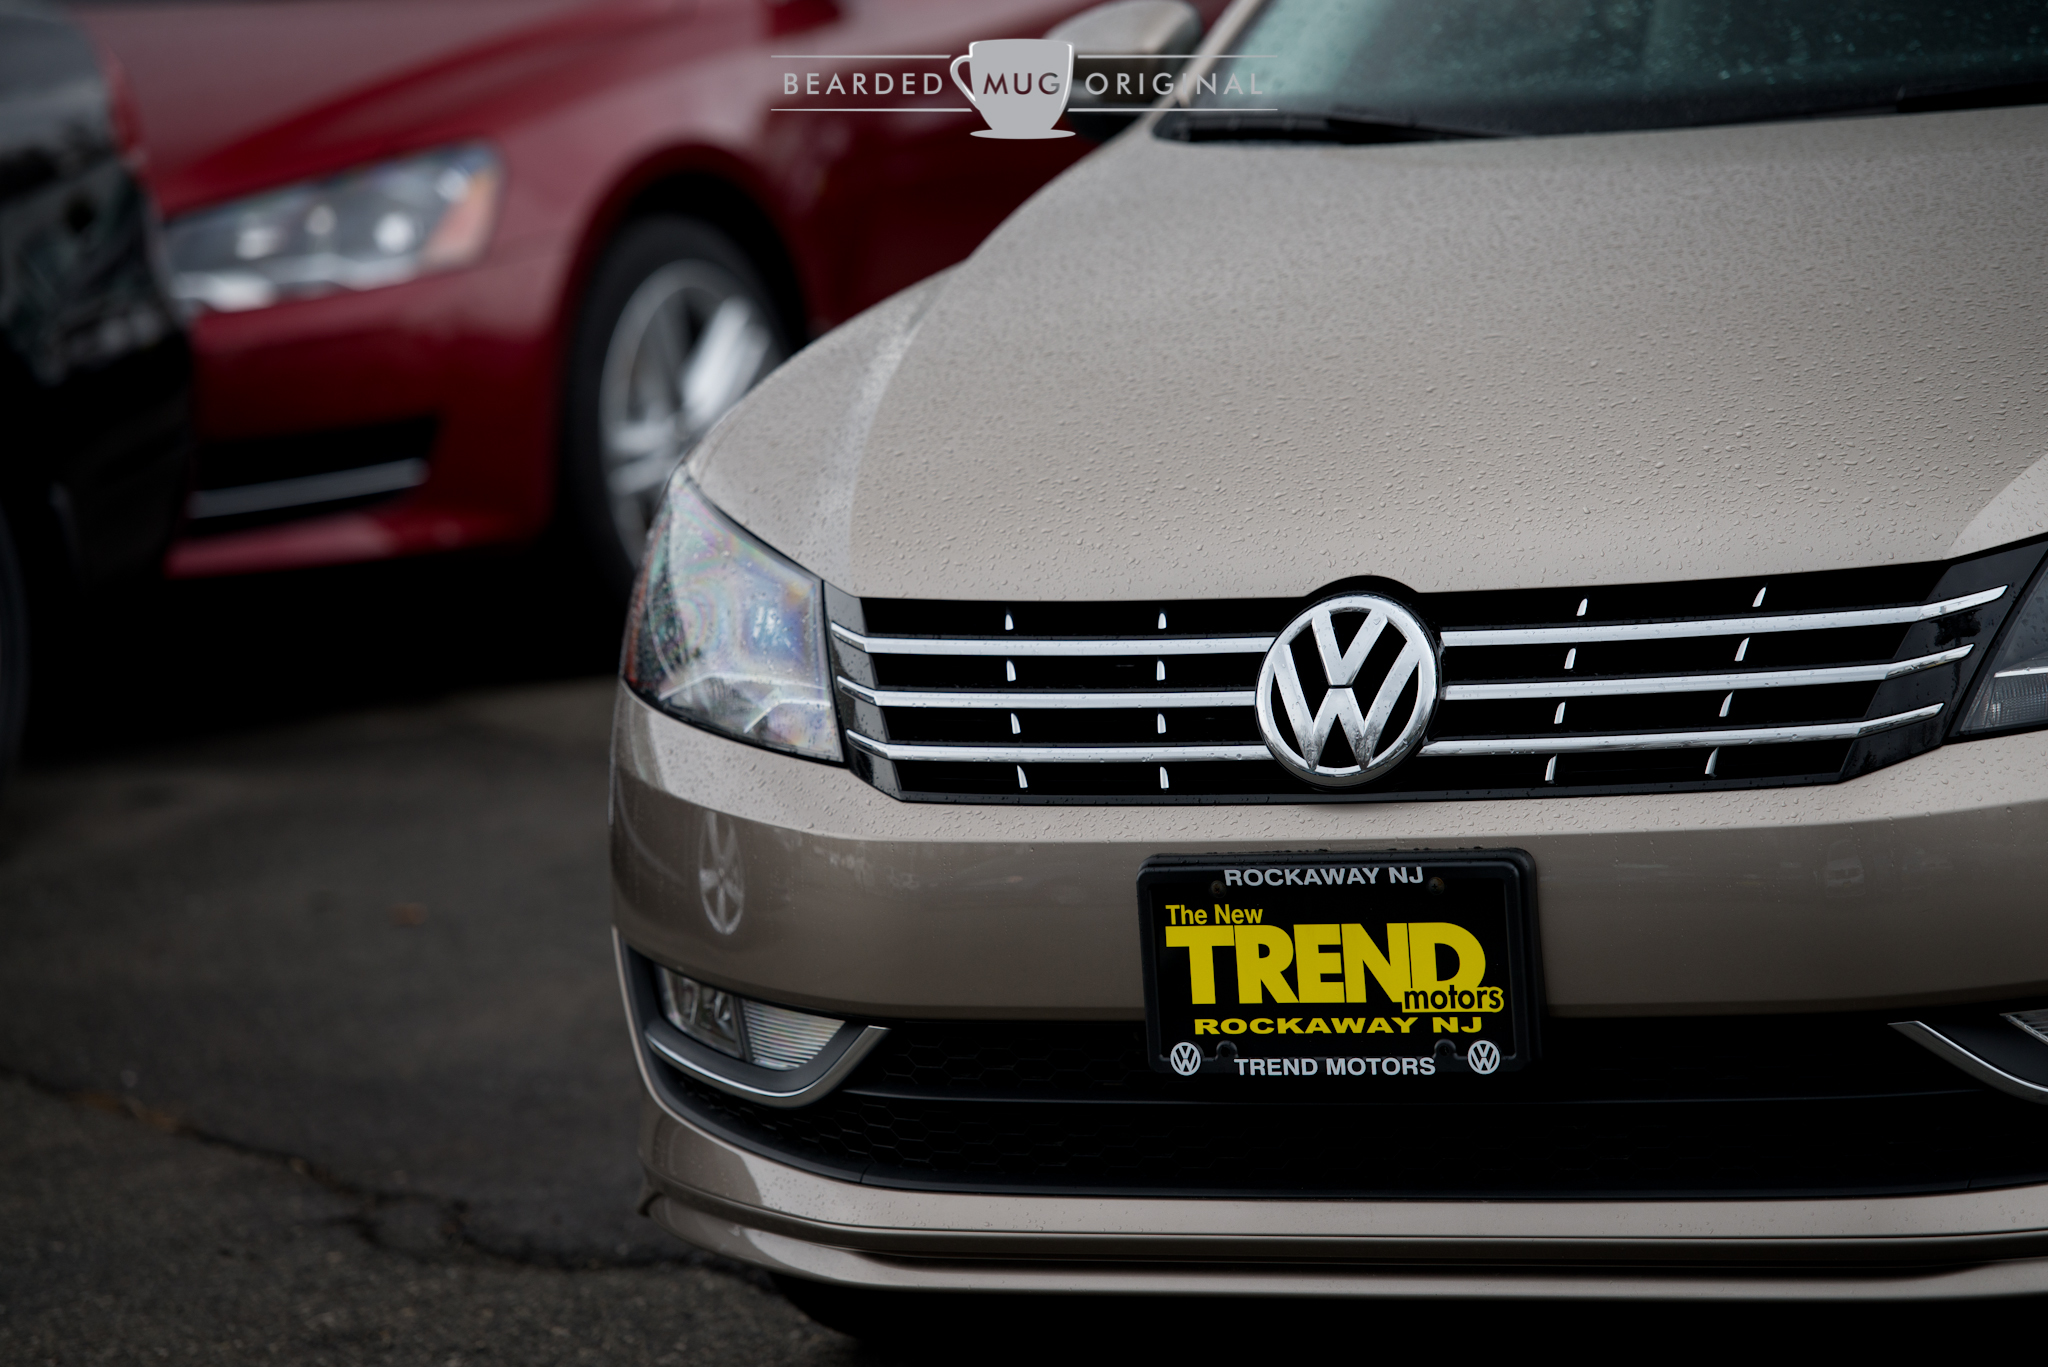 I'm very curious to see the range change of the Passat TDI once the emissions issued is addressed.